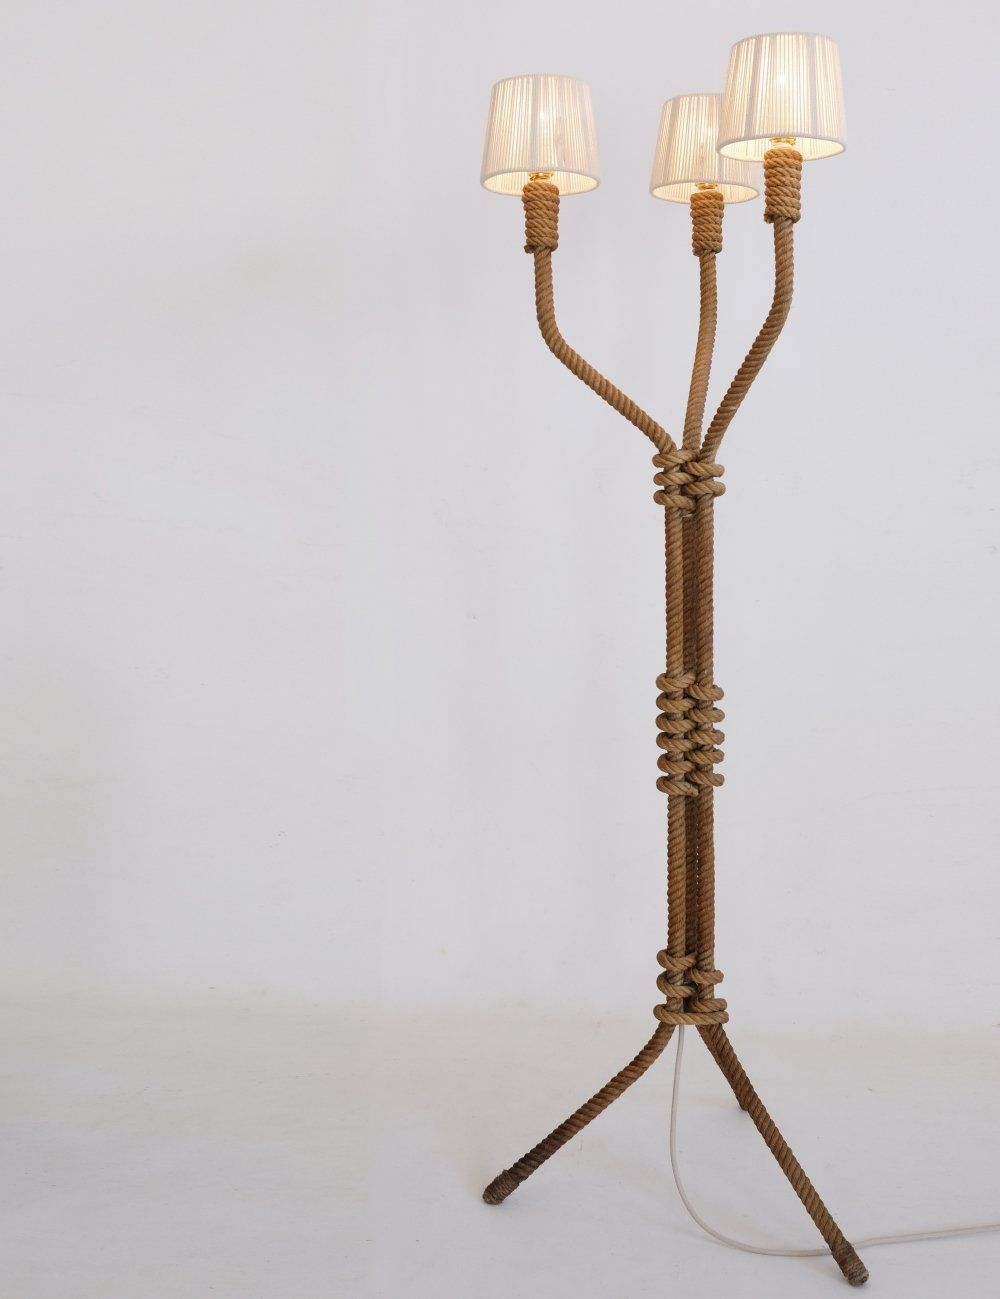 For Sale French Rope Floor Lamp From The 1940s 1950s Floor Lamp Lamp Floor Lamp Lighting